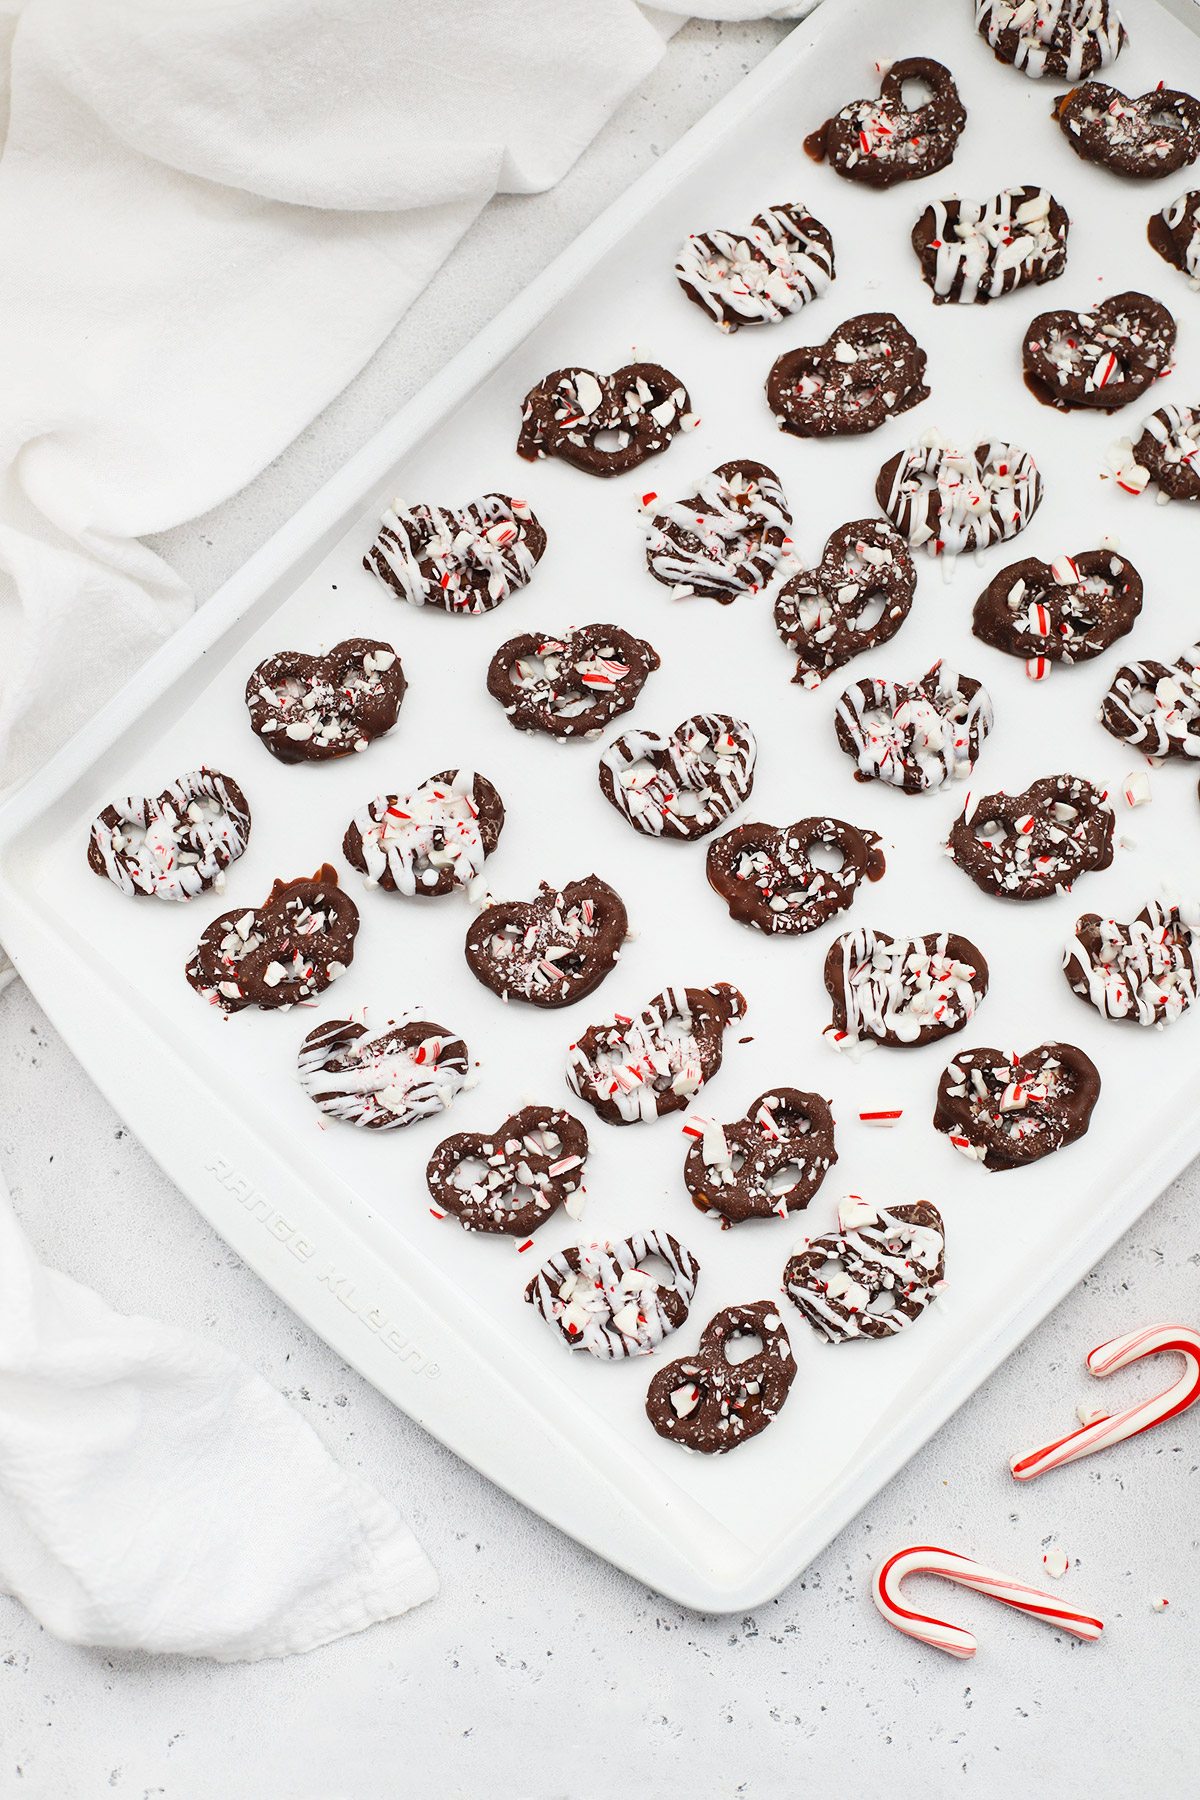 Overhead view of gluten-free chocolate peppermint pretzels covered with crushed candy canes cooling on a white baking sheet